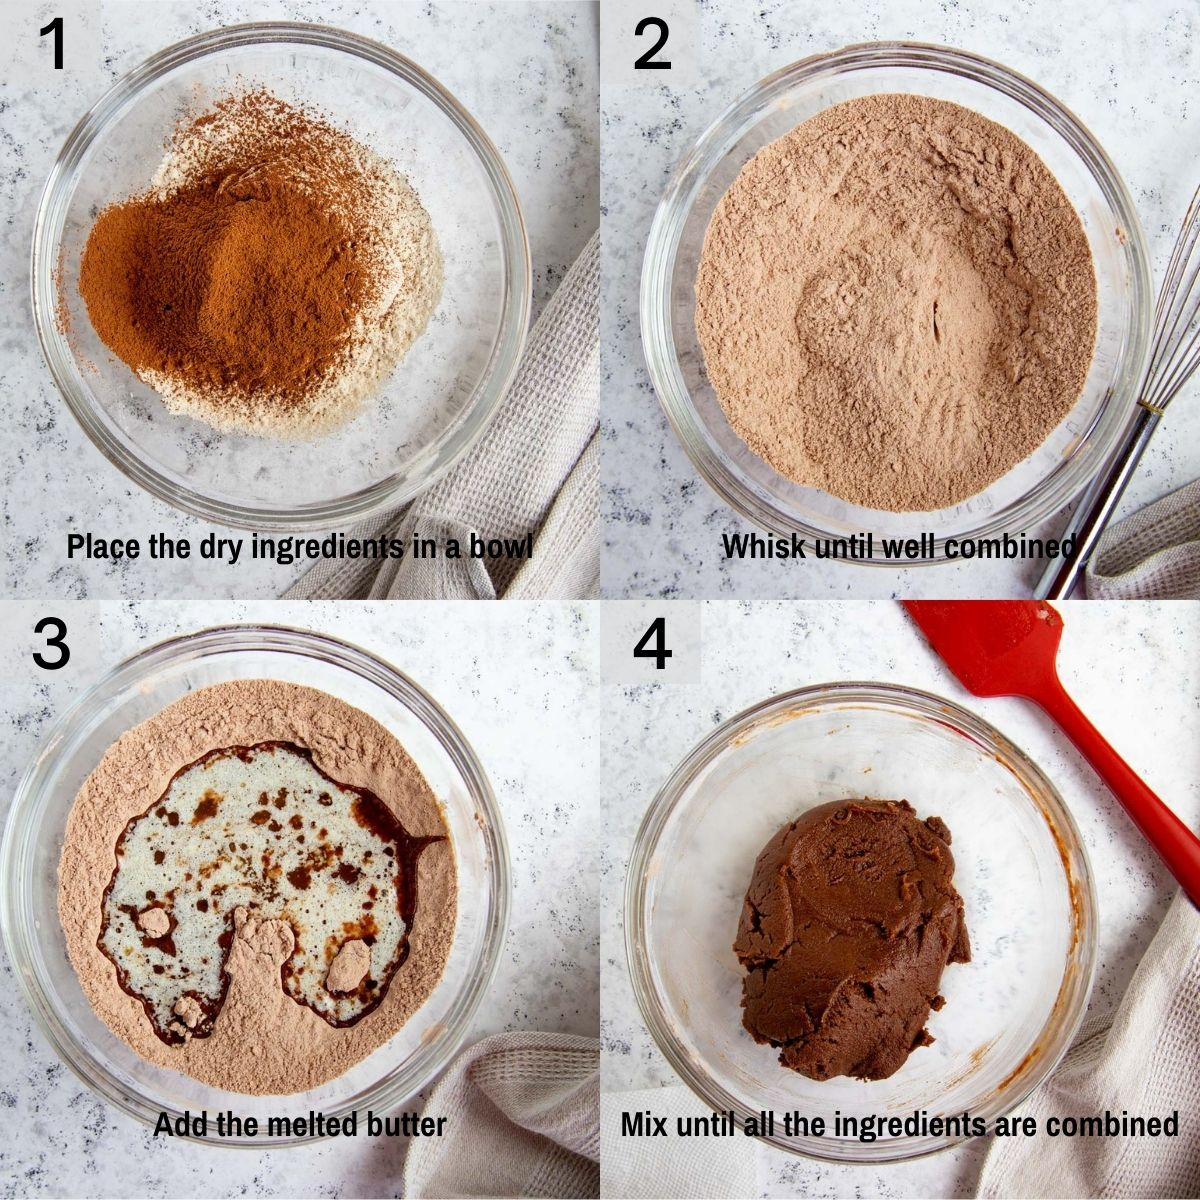 Visual steps for making the chocolate cookies crust